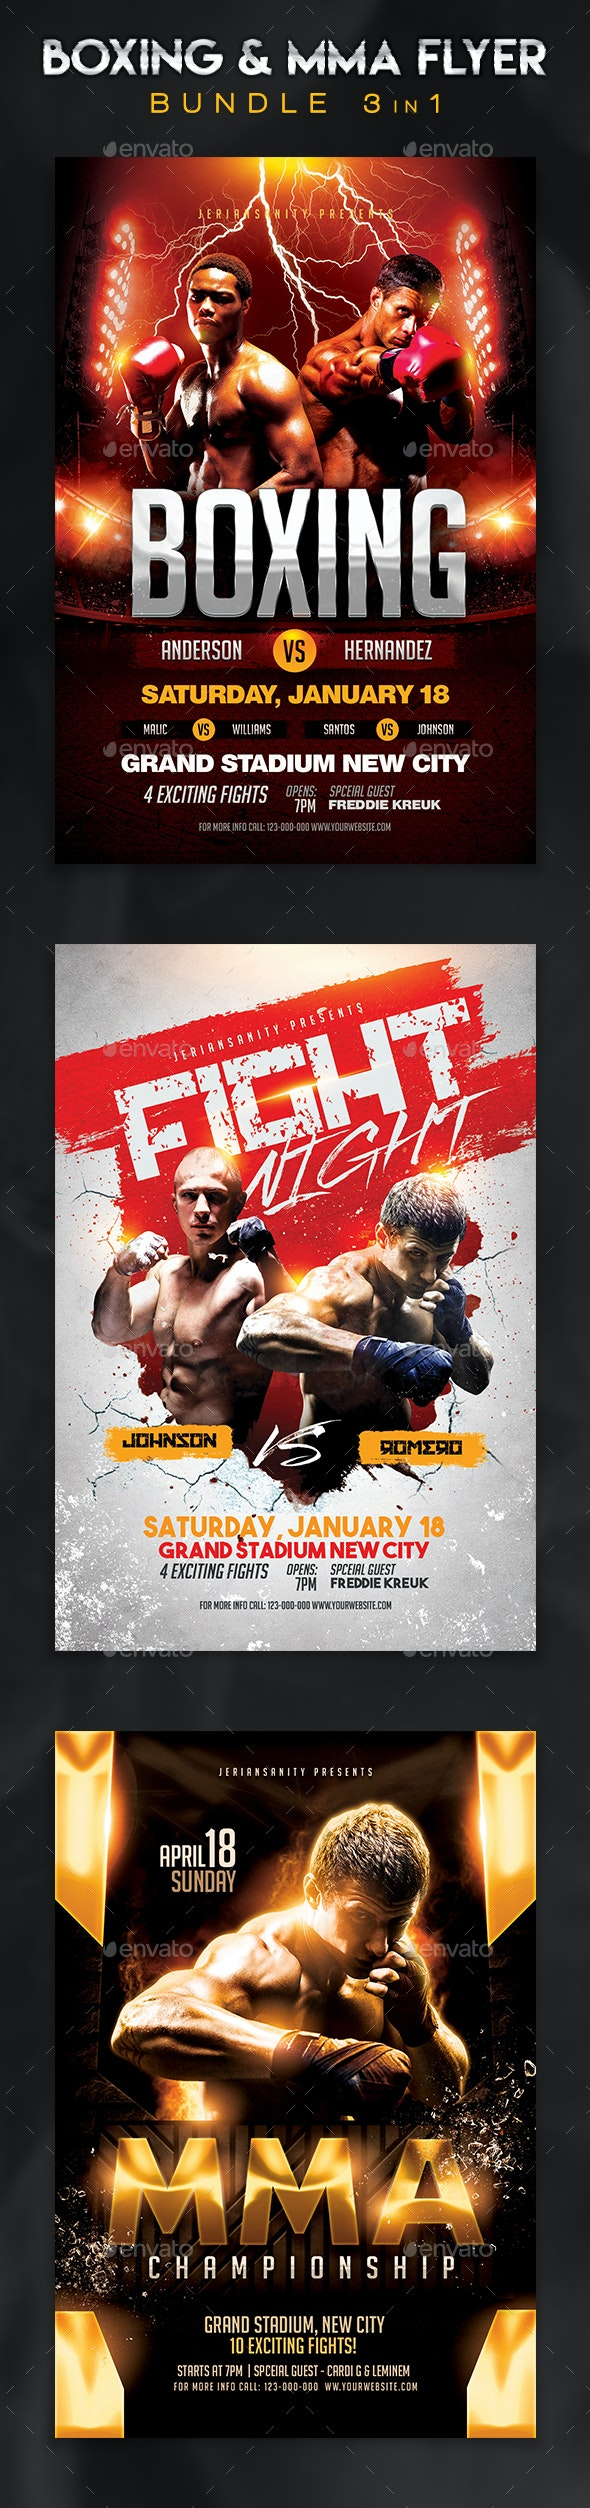 Boxing & MMA Flyer Bundle - Sports Events